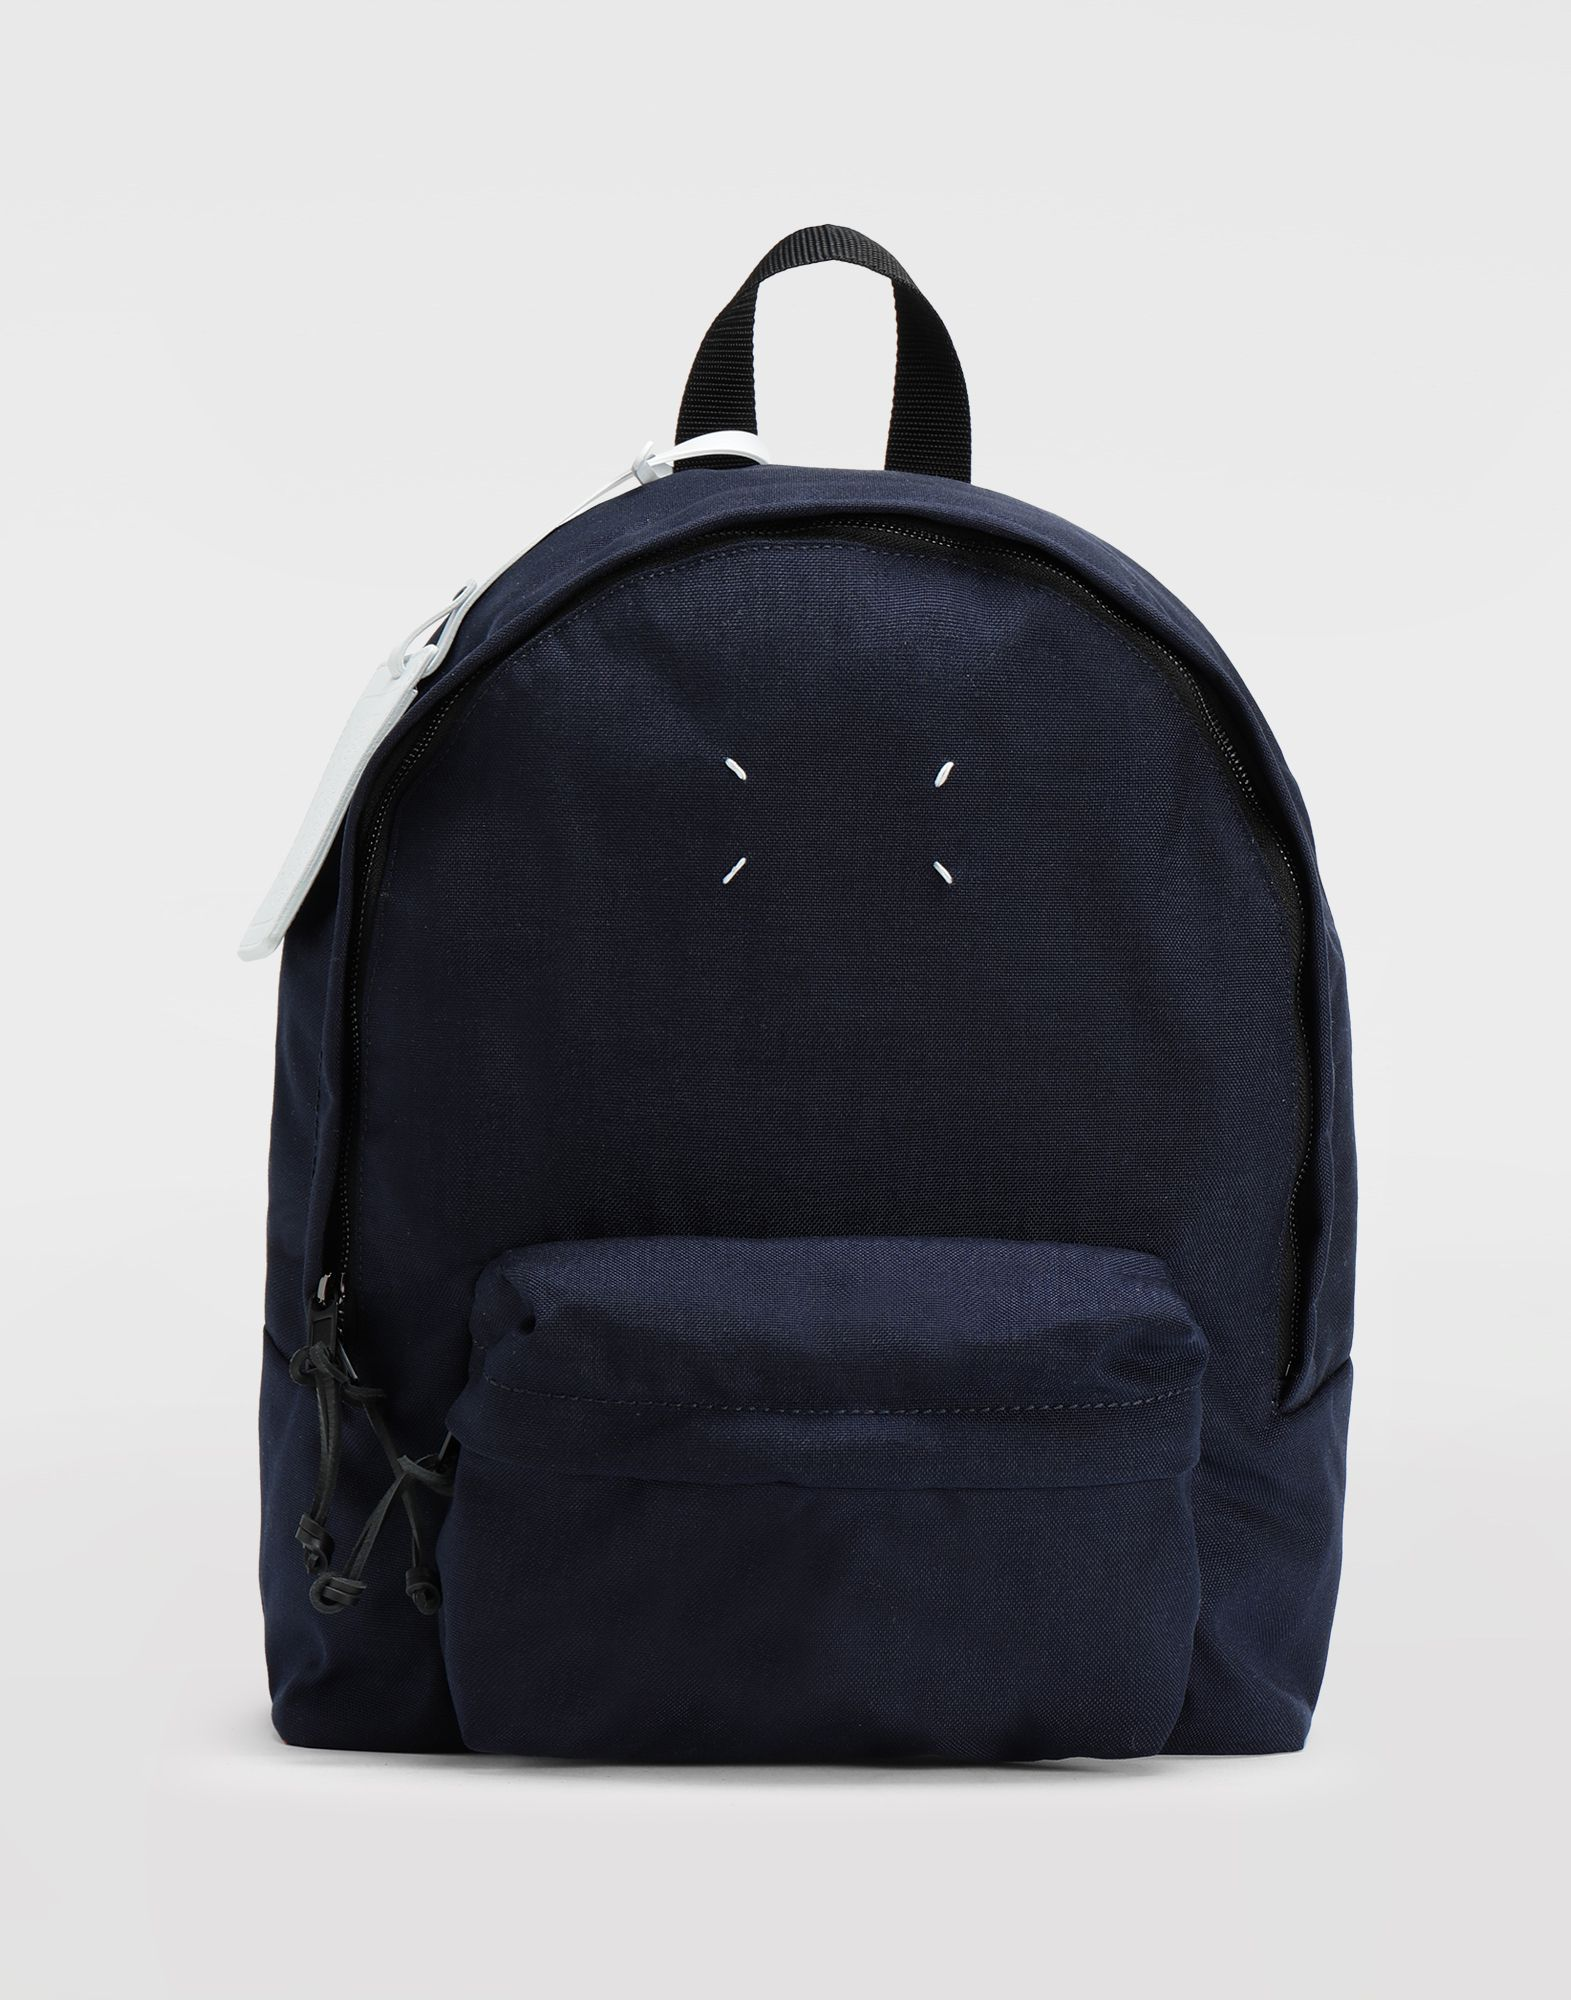 MAISON MARGIELA Stereotype backpack Backpack Man f